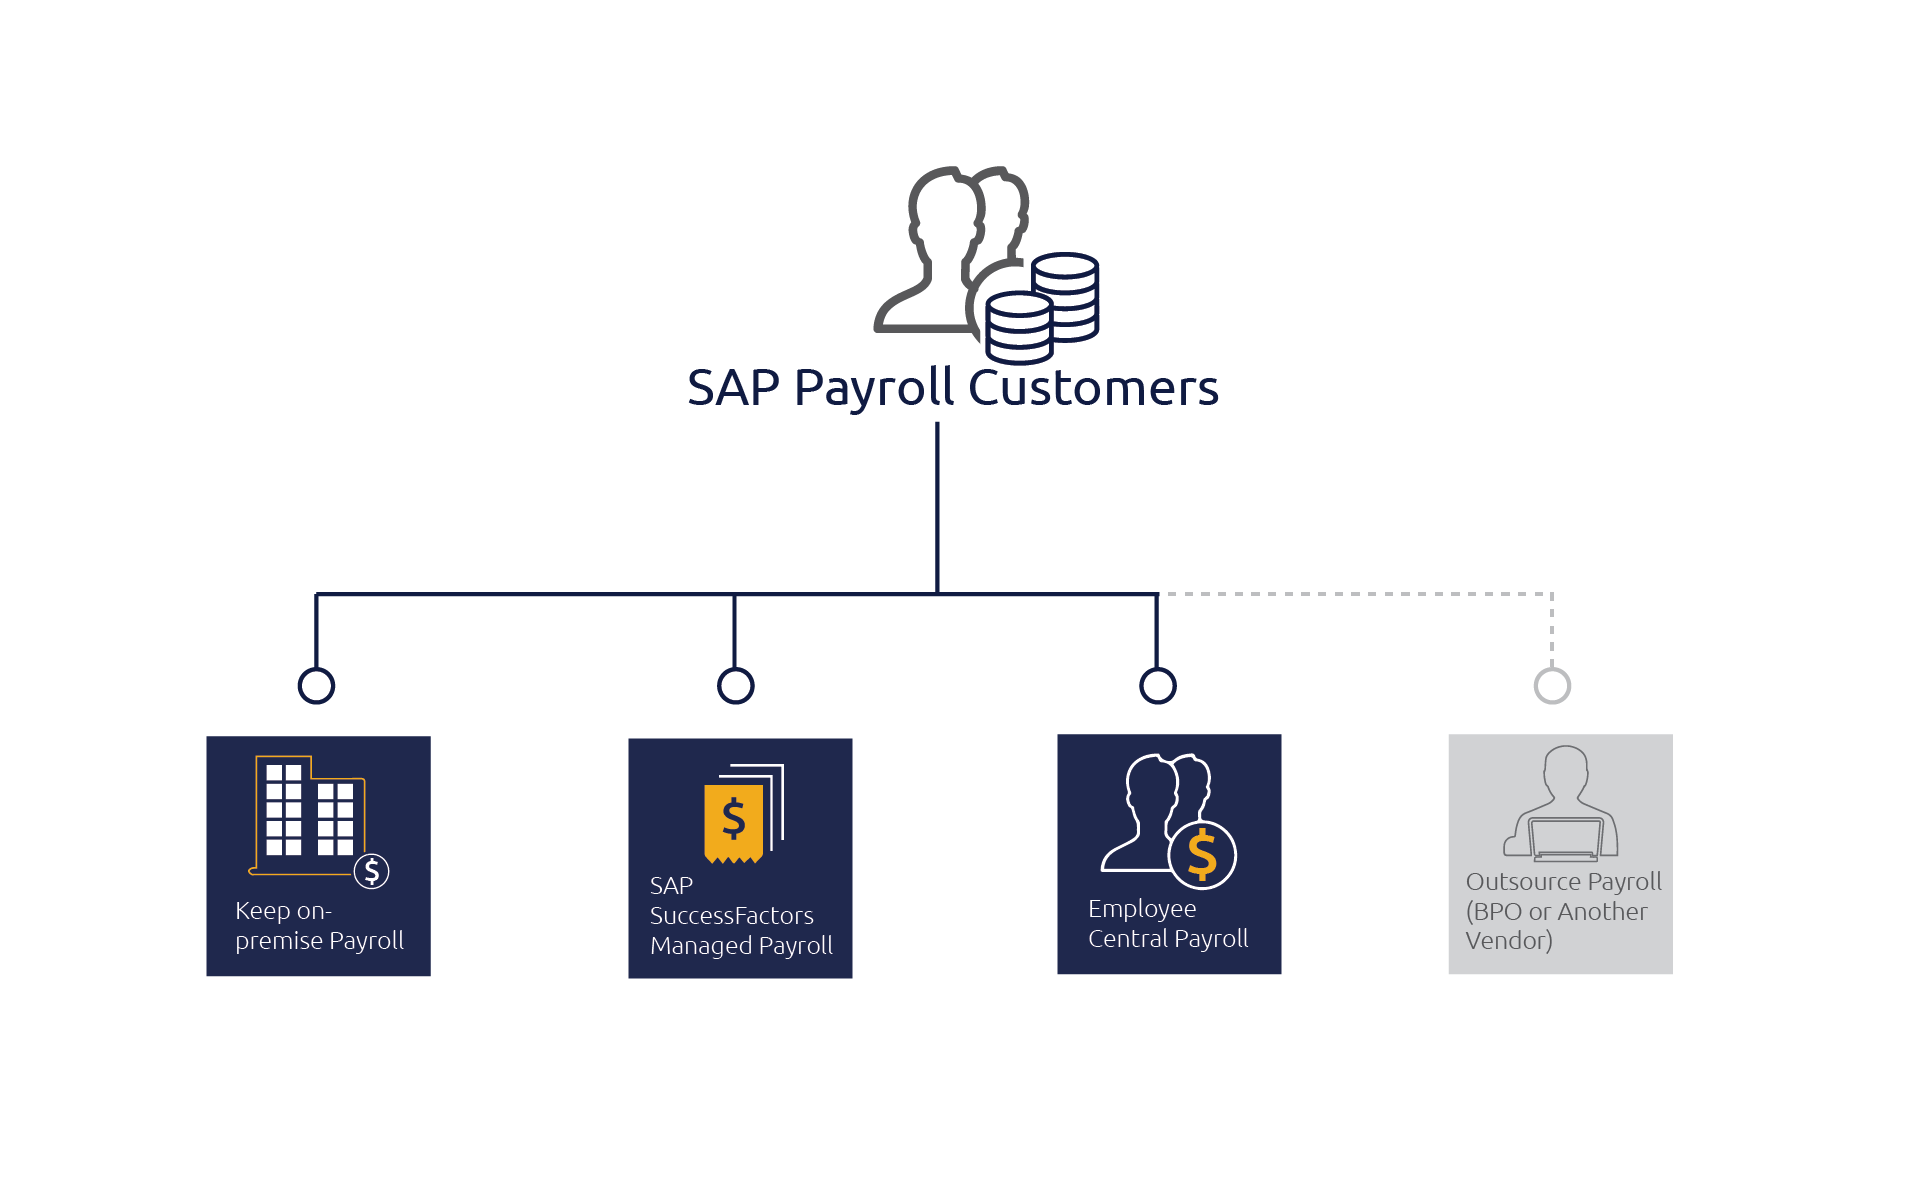 Four options for existing SAP on-premise Payroll customers